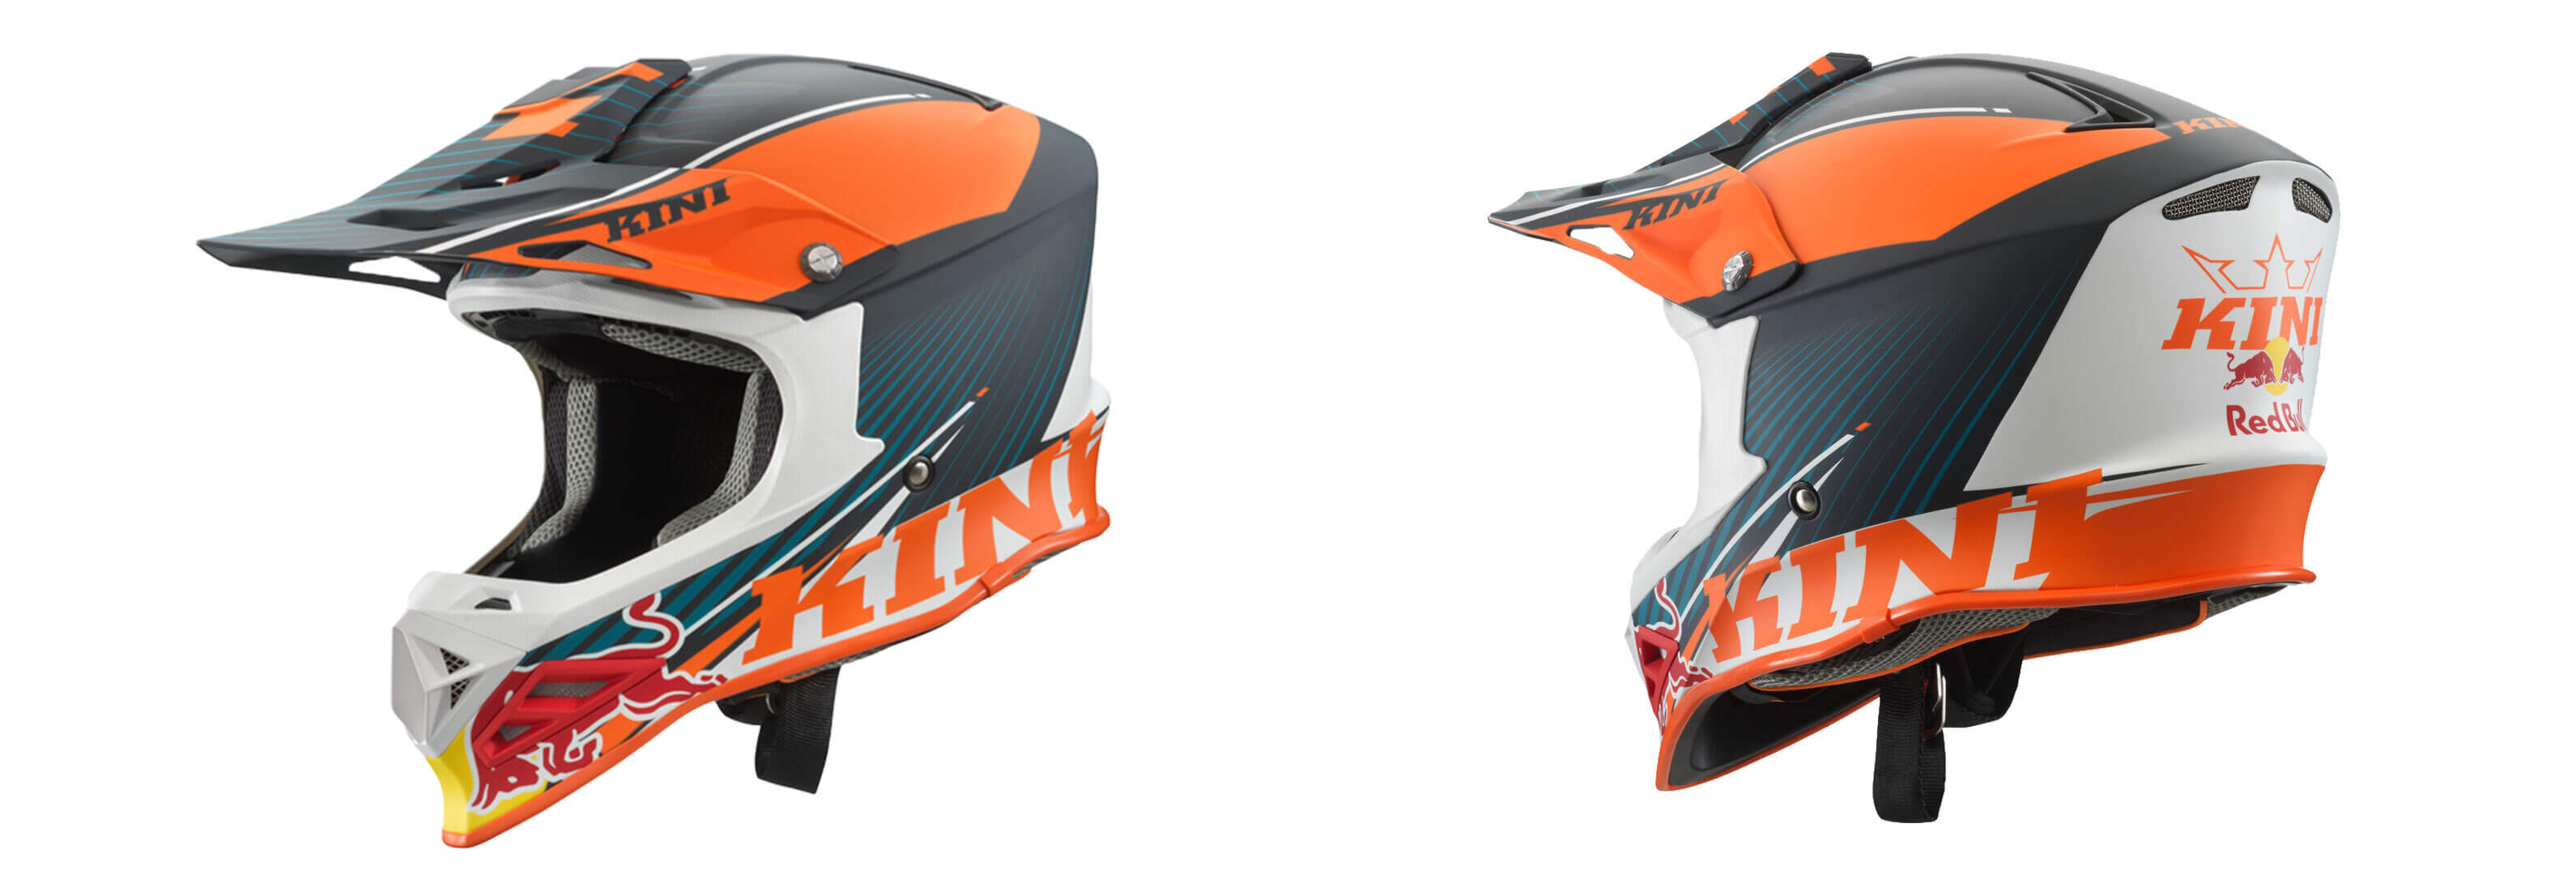 Motocross Helm & Enduro Helm & Crosshelm von Kini Red Bull 2020